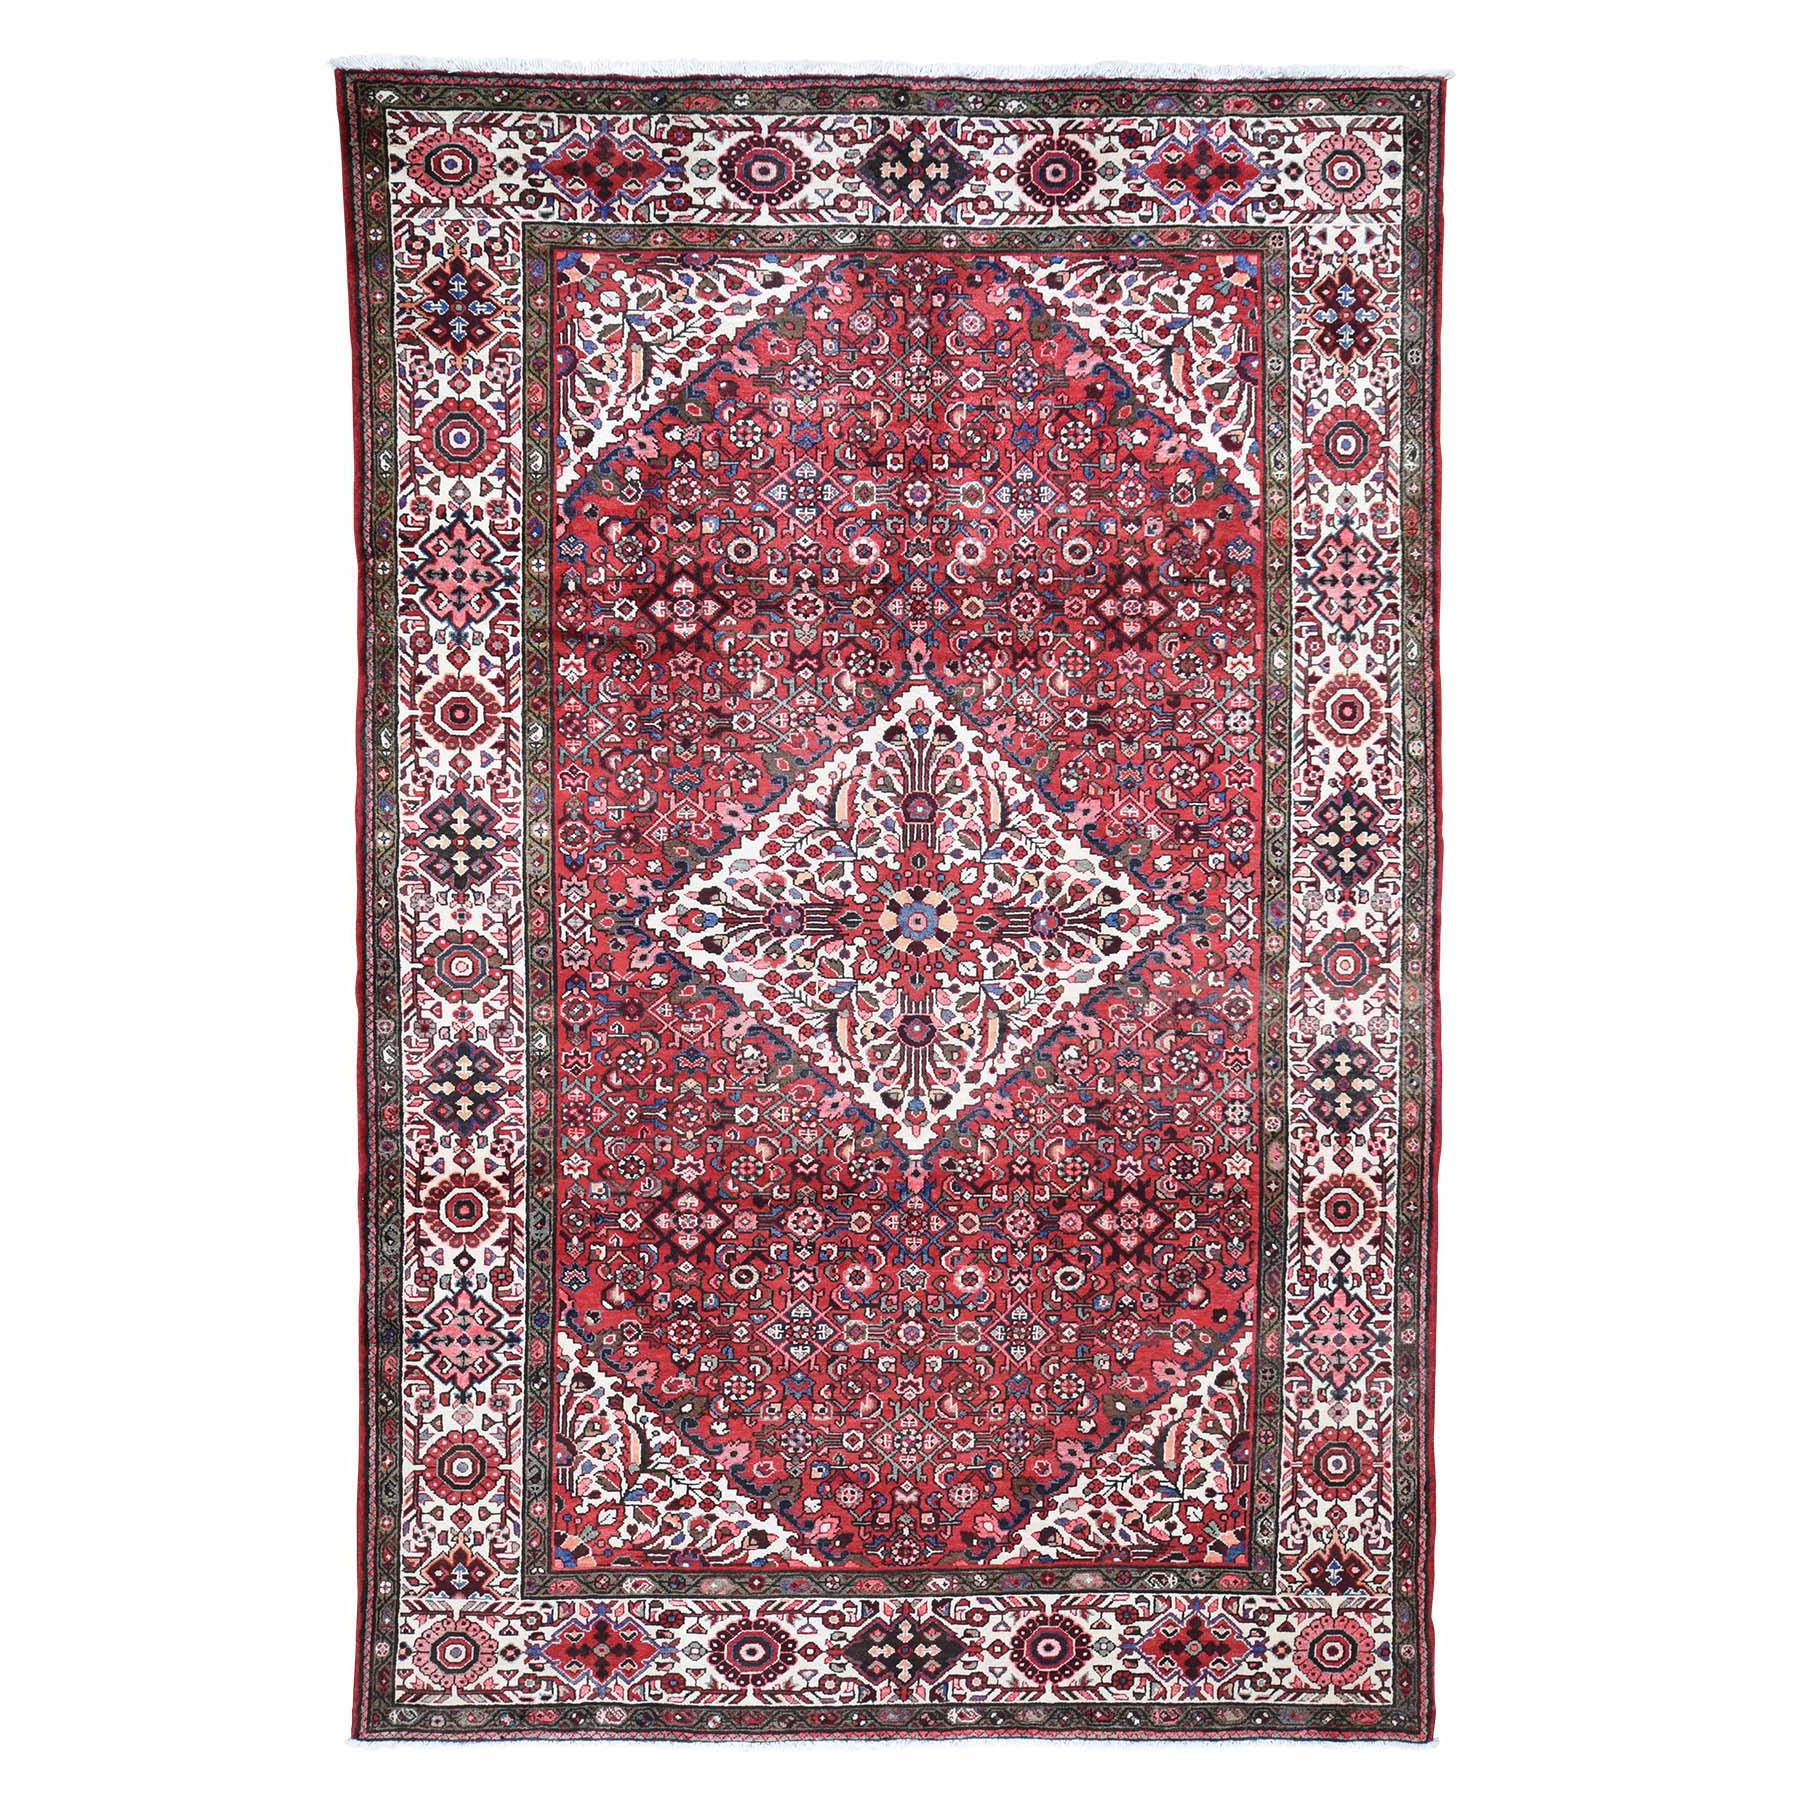 "7'2""X11' Red New Persian Hussainabad Pure Wool Hand-Knotted Oriental Rug moad6eba"